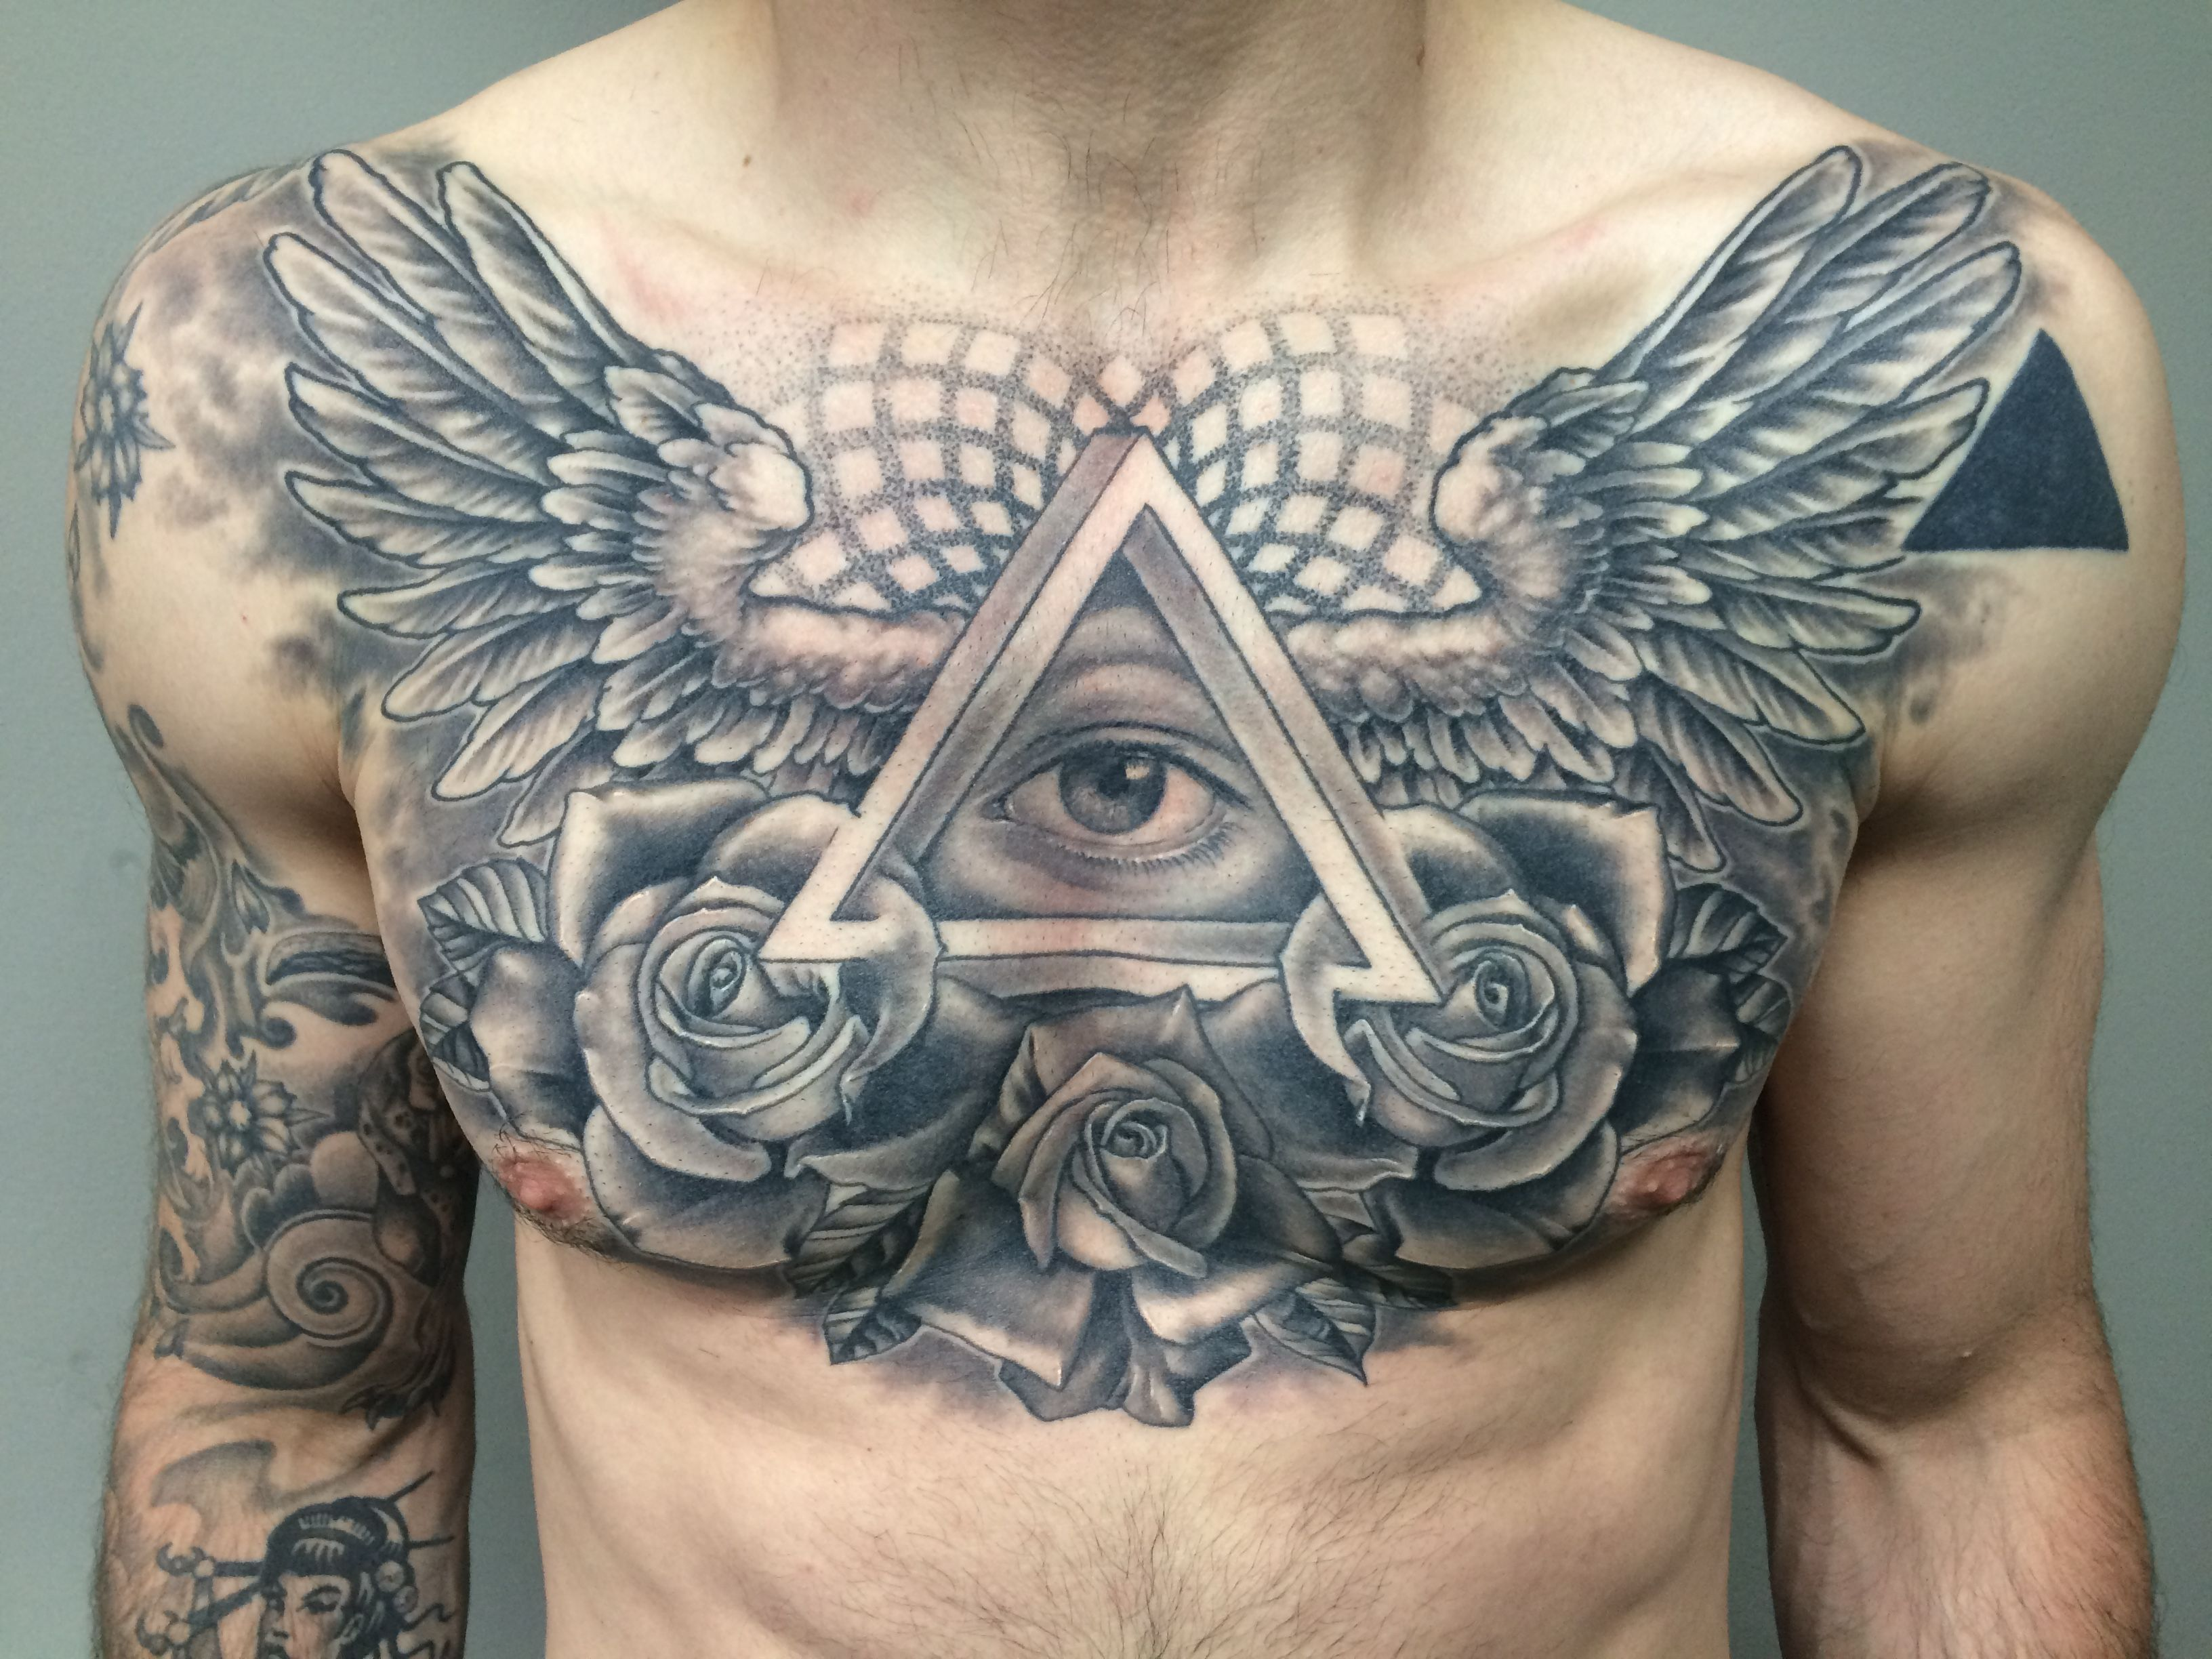 Wings chest piece tattoo | Tattoos | Pinterest | Chest piece tattoos ...